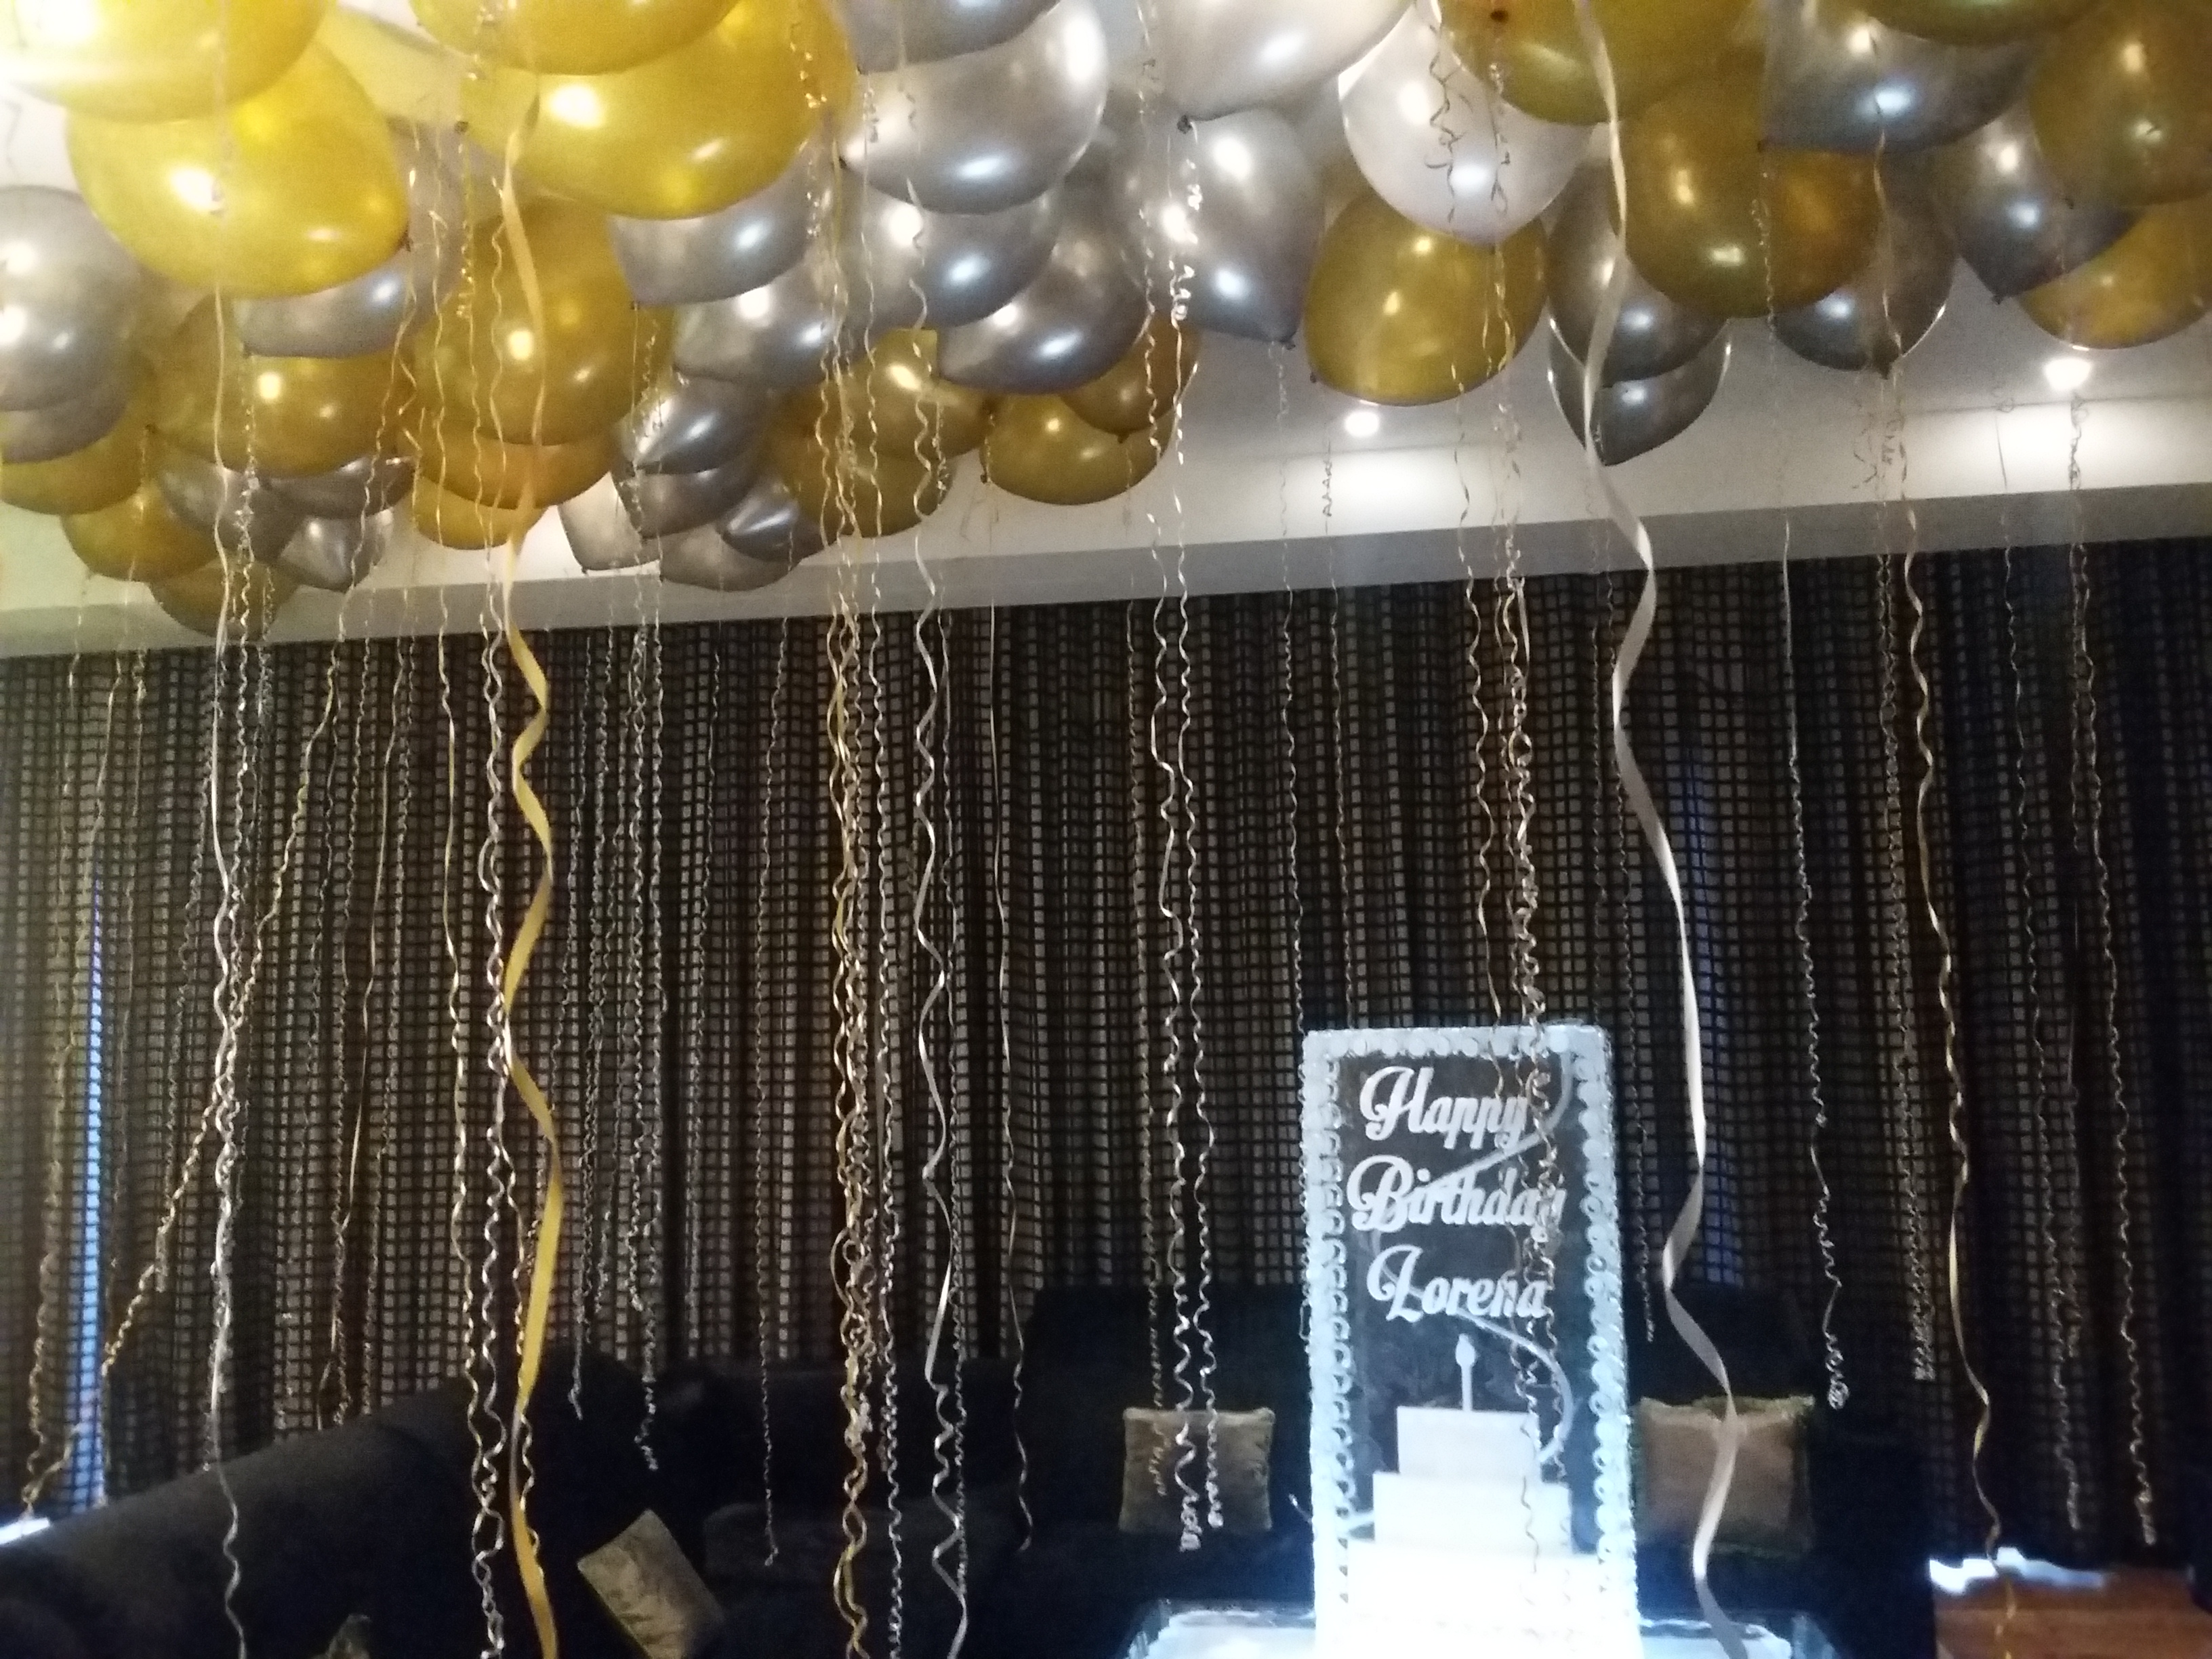 Balloons and Ice sculpture in the suite